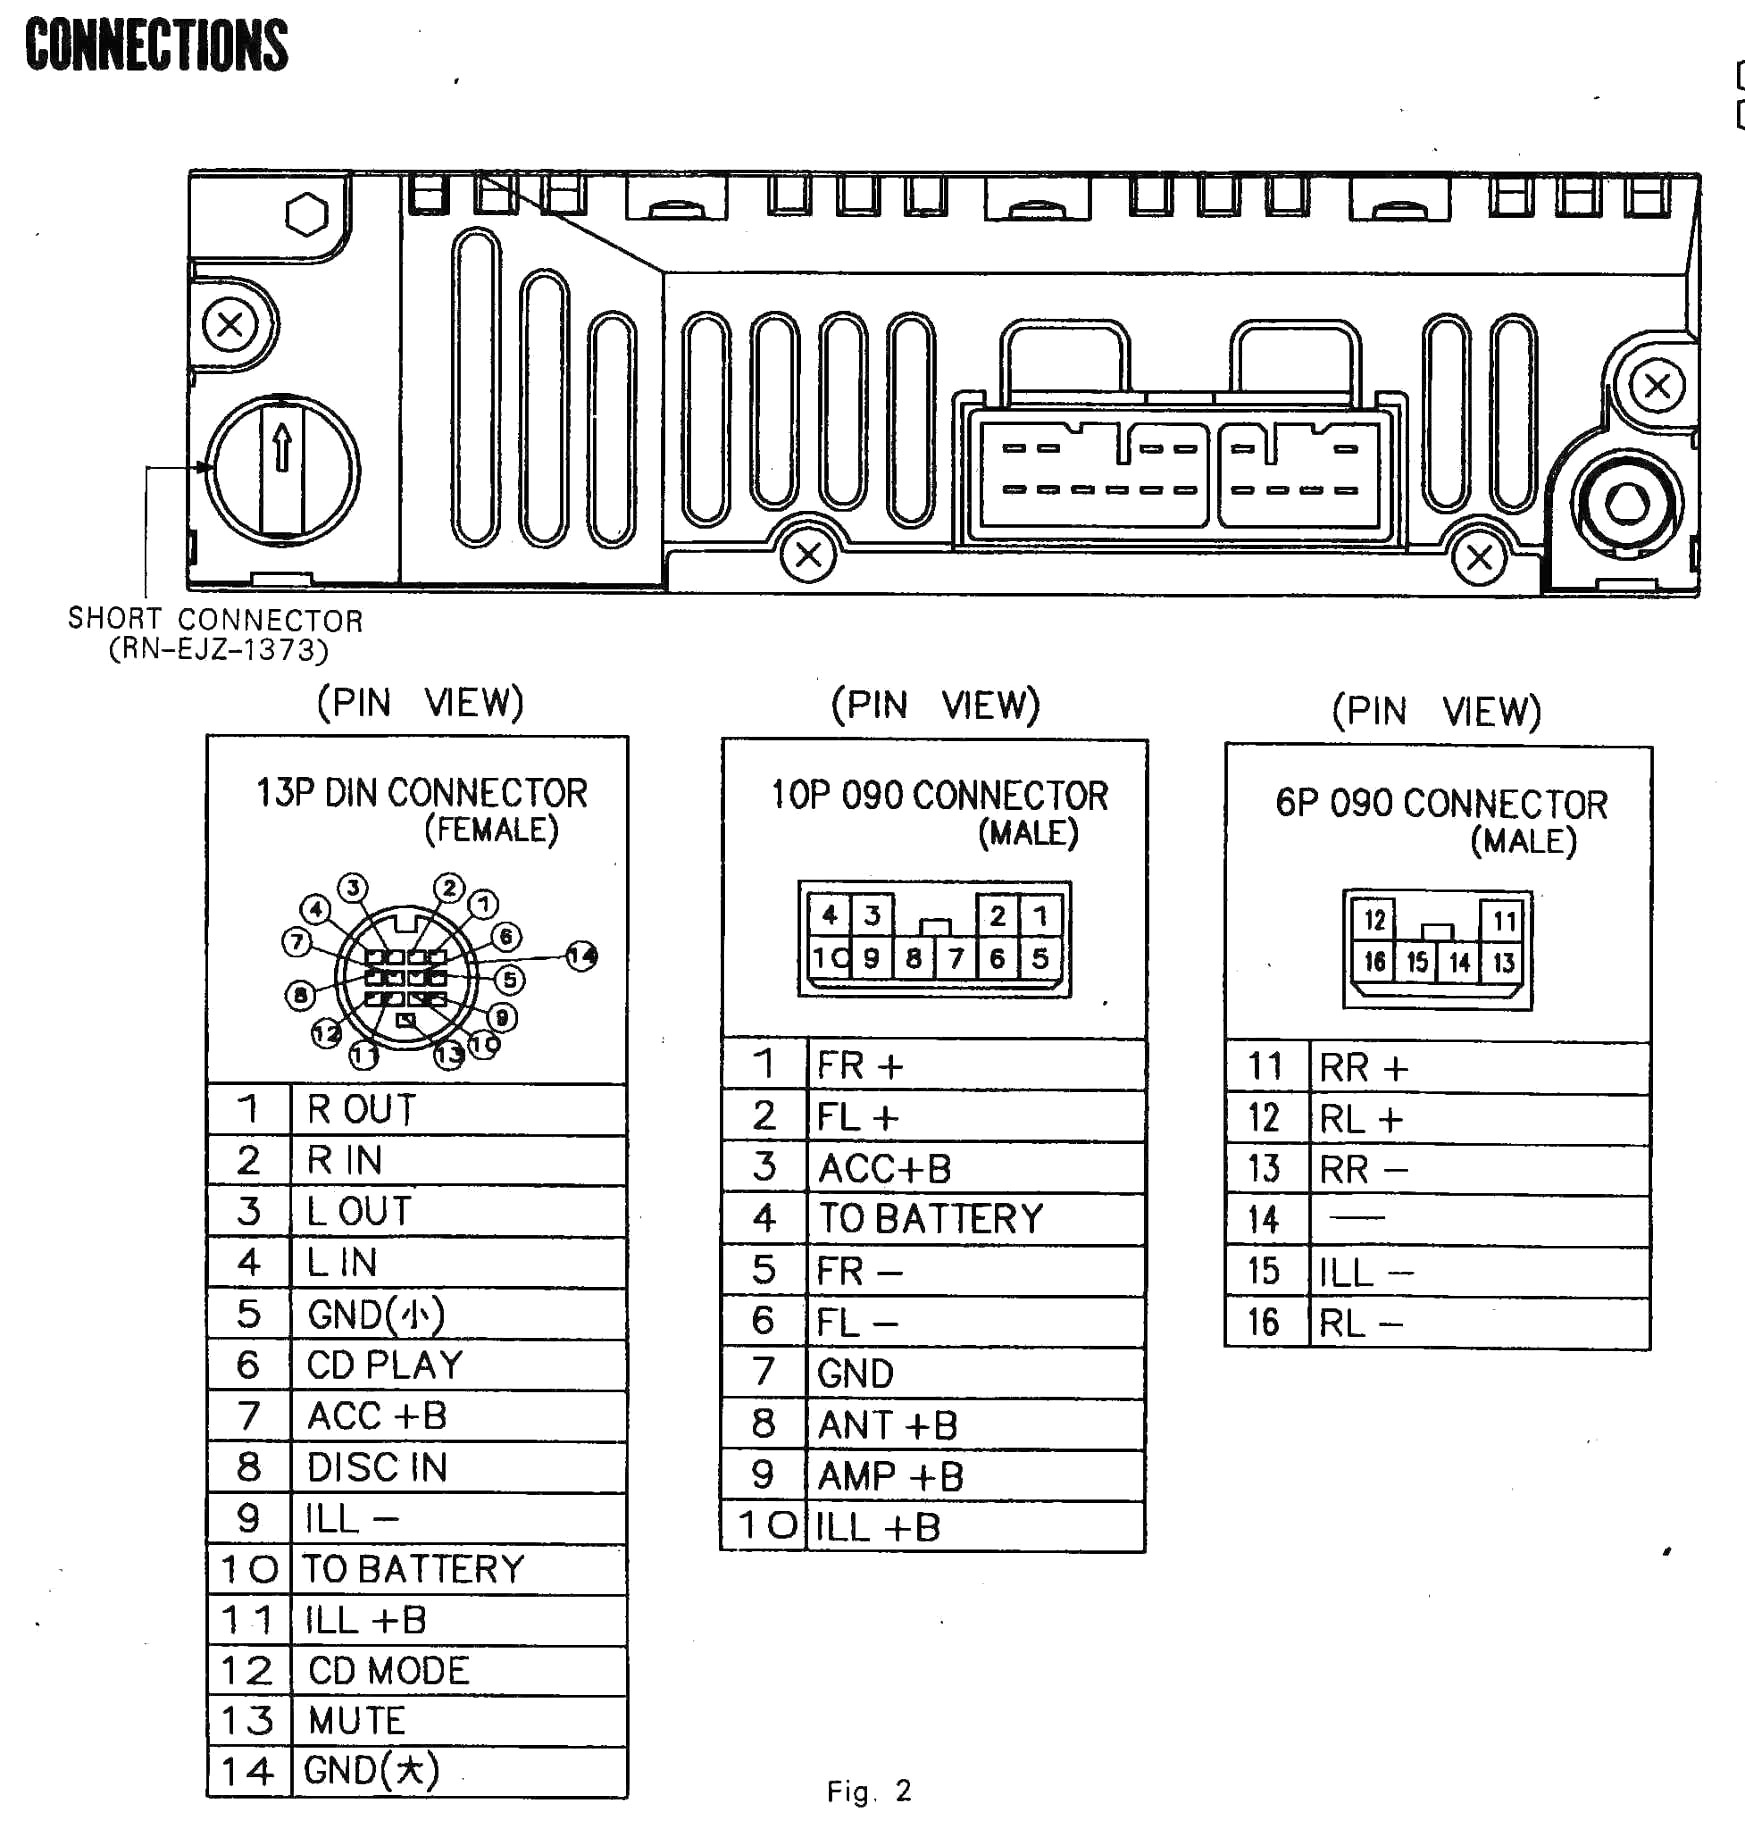 hight resolution of 2006 jetta stereo wiring diagram wiring diagrams u2022 2012 vw jetta tdi fuse box diagram 2006 jetta 1 9 tdi fuse diagram